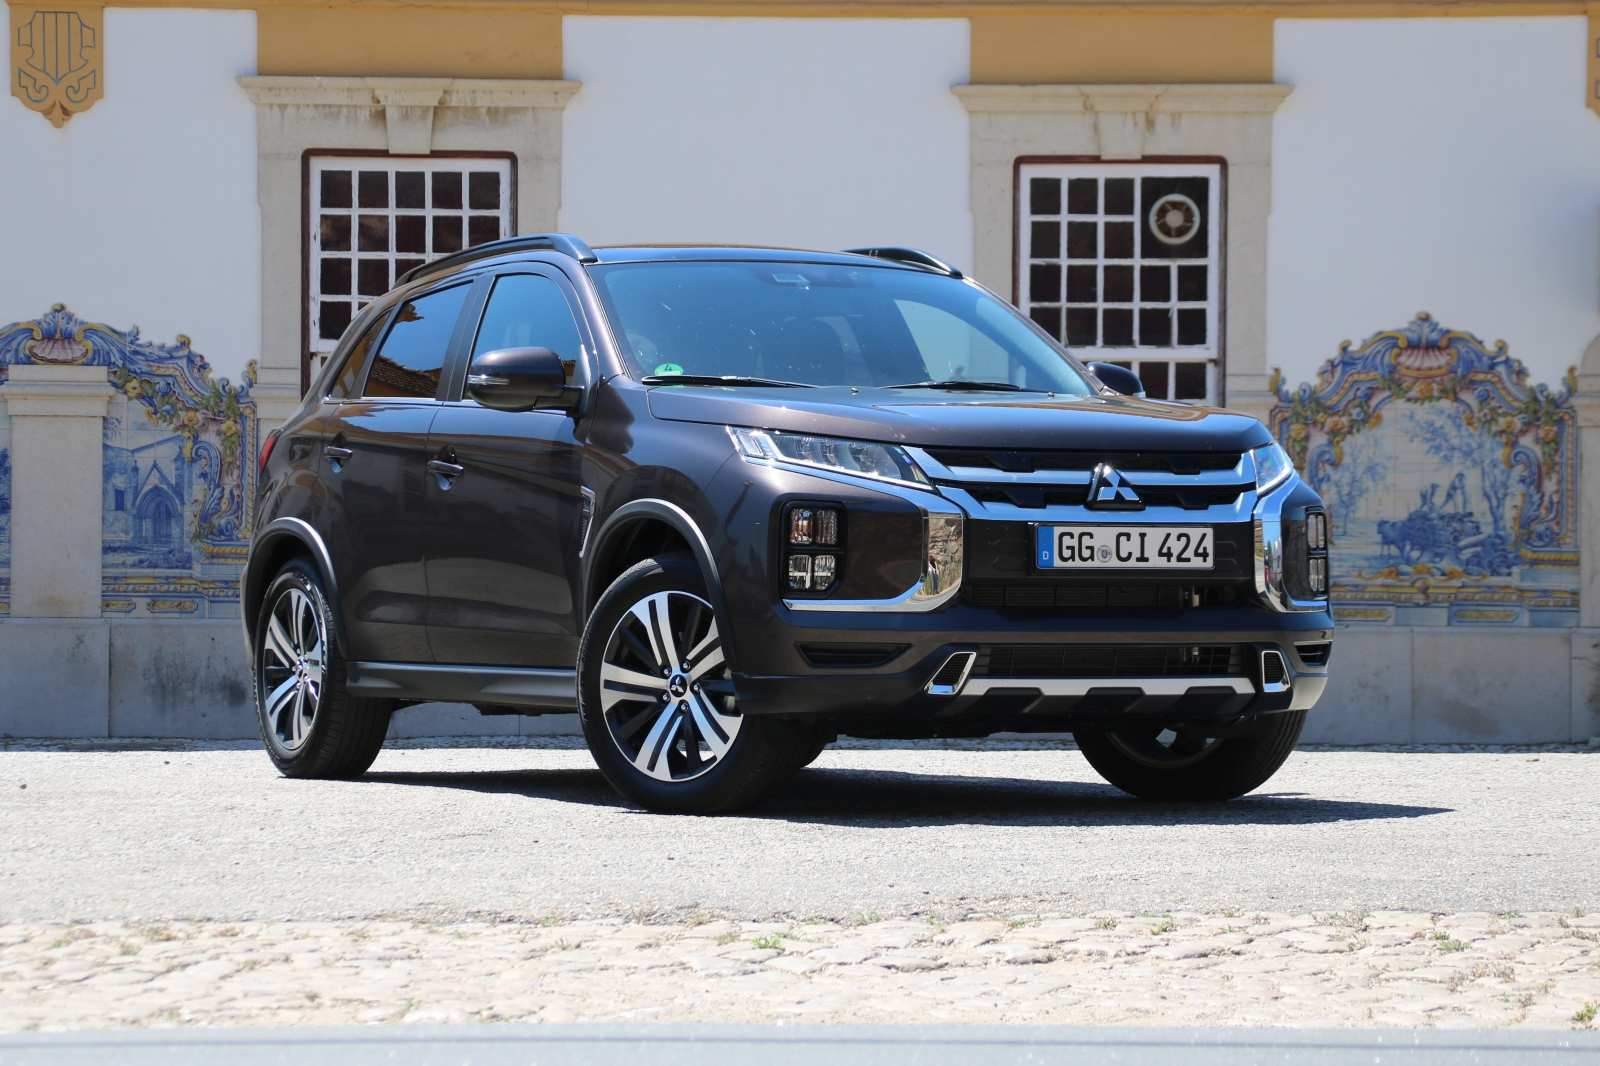 47 Best Review Mitsubishi Outlander Wegenbelasting 2020 History with Mitsubishi Outlander Wegenbelasting 2020